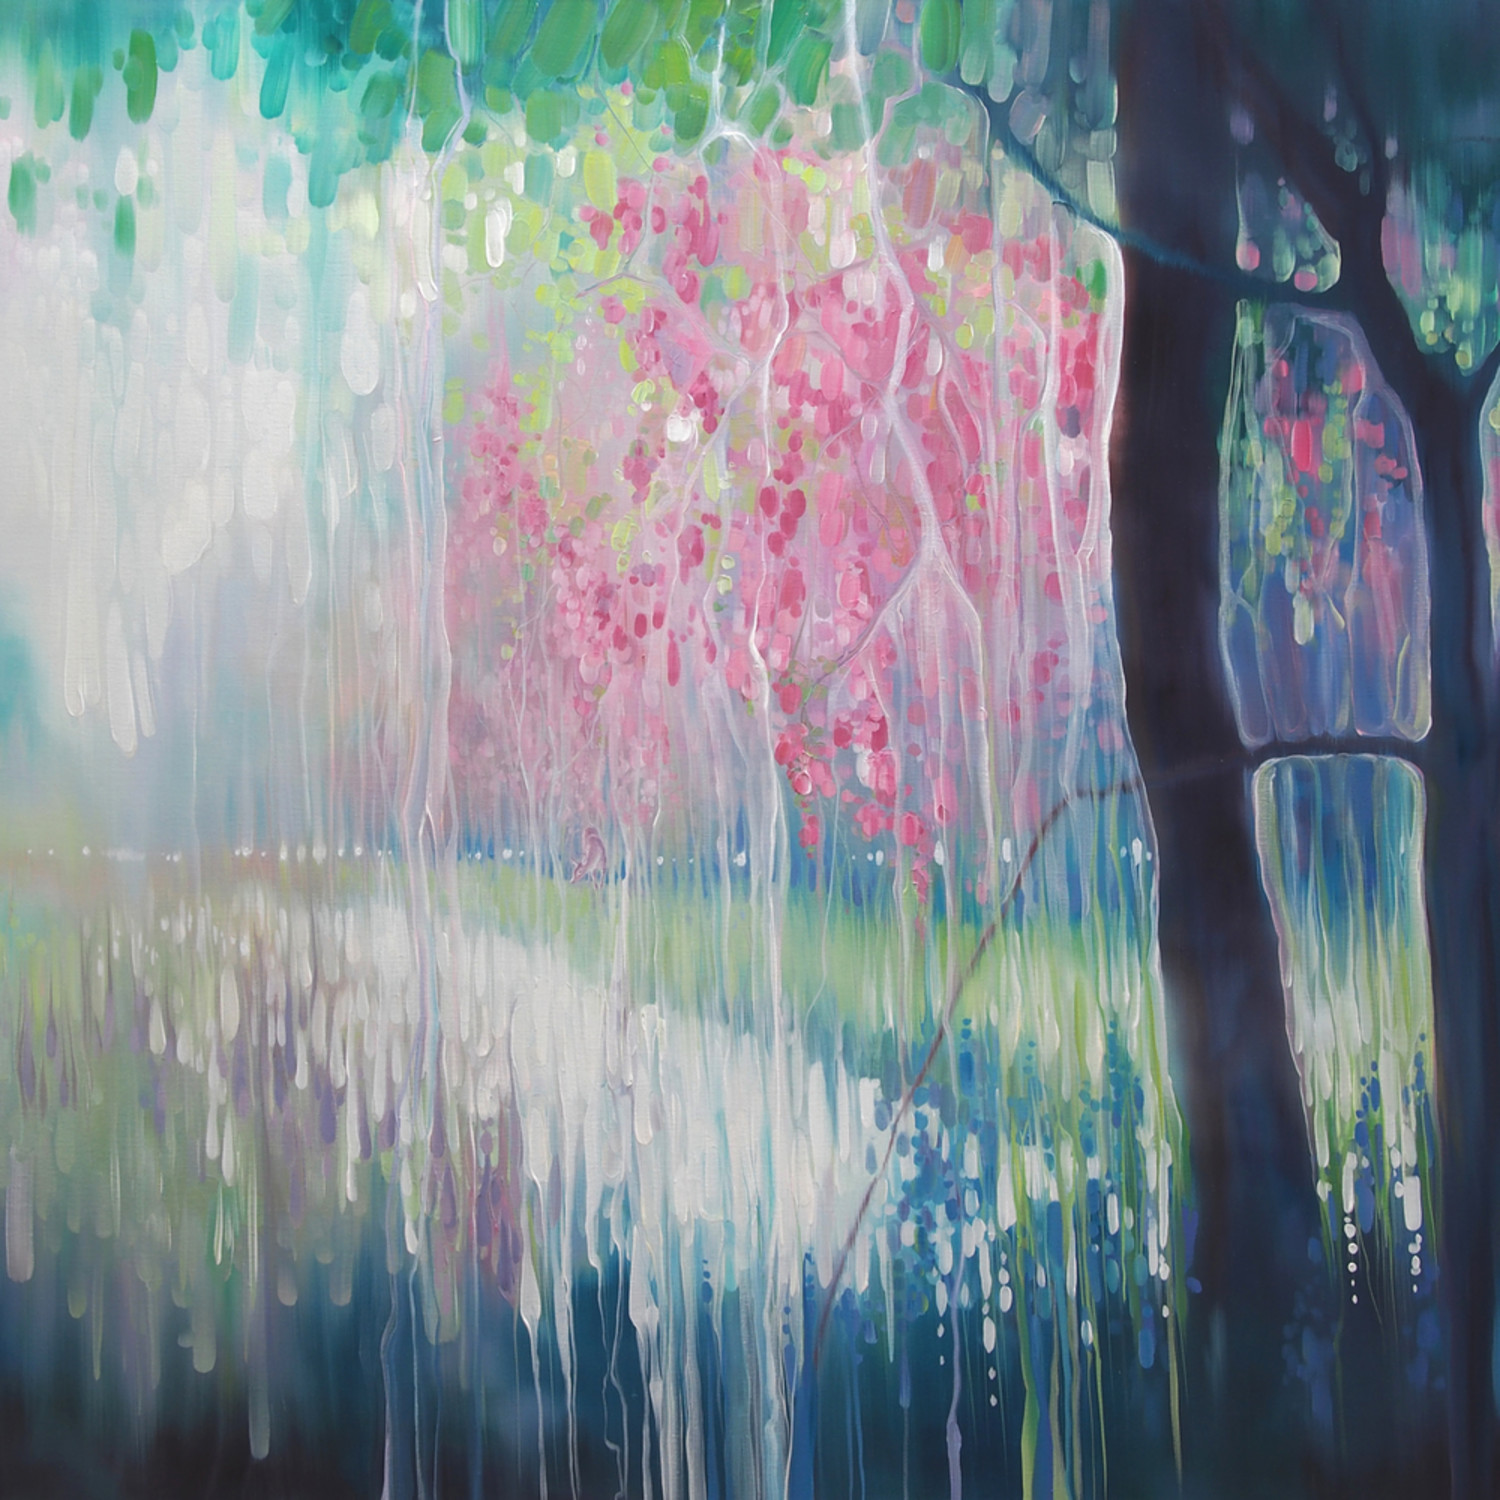 Song of april by gill bustamante 72 r70e31